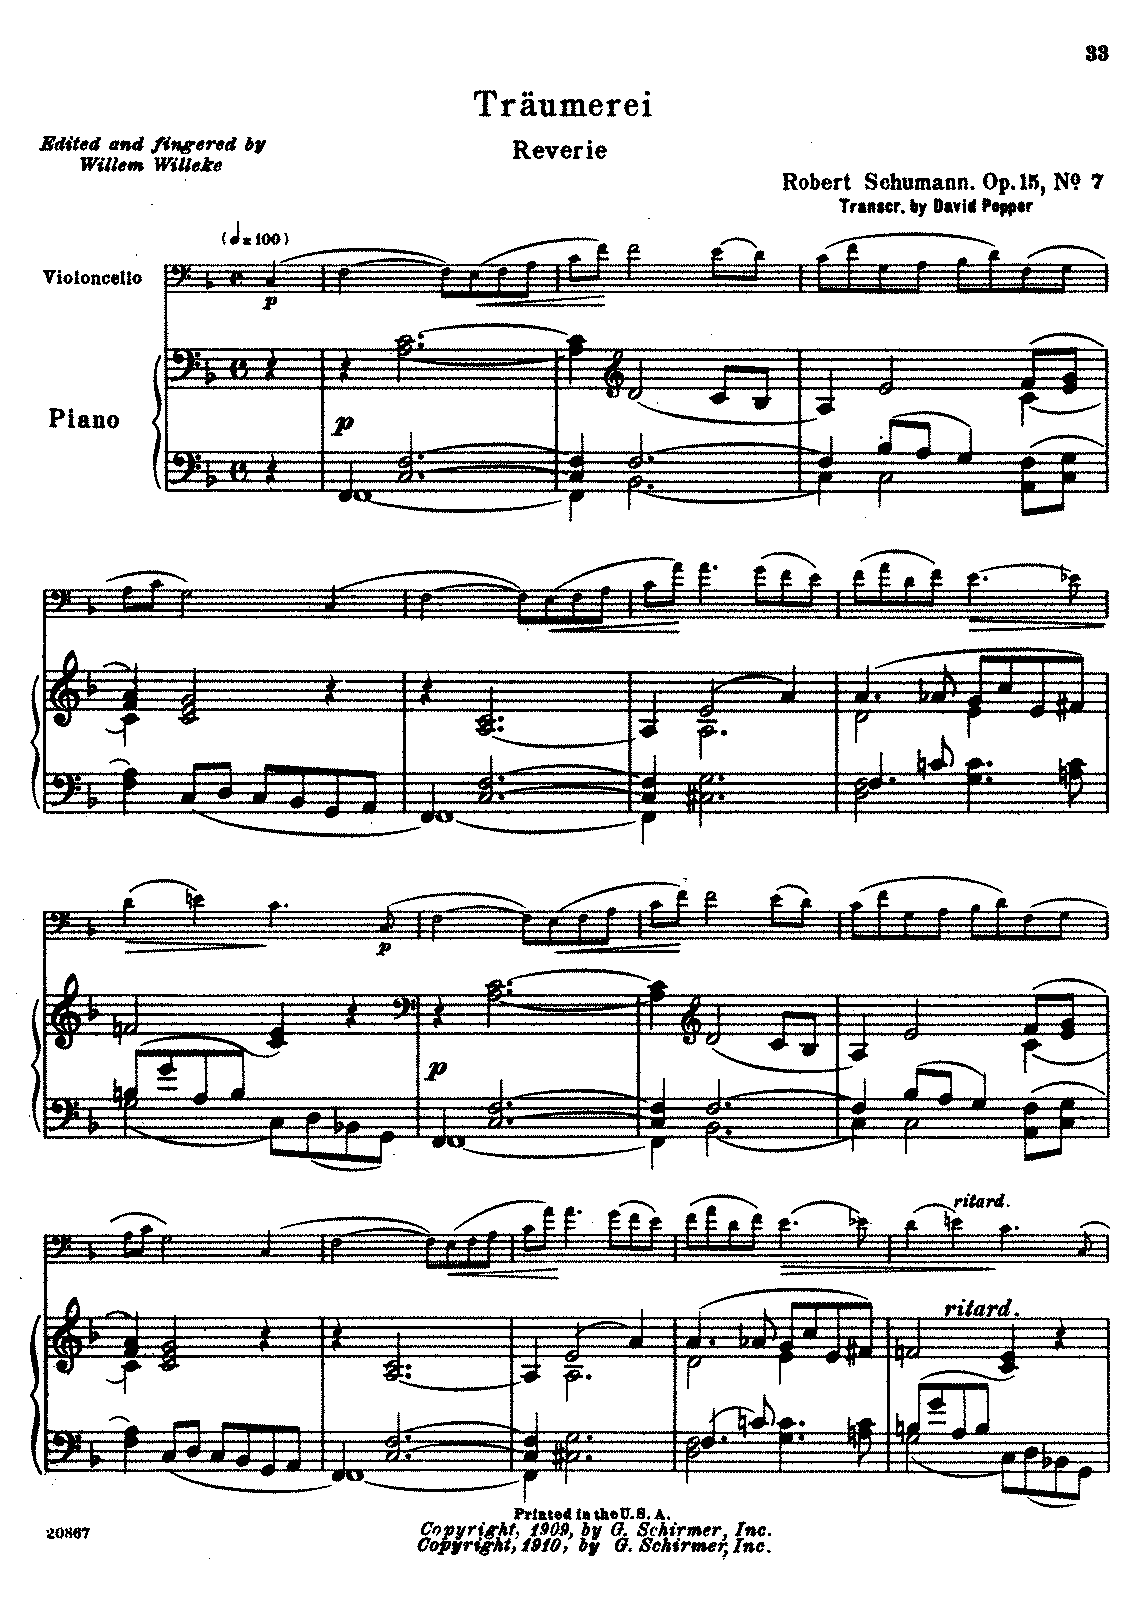 PMLP02799-Schumann - Traumerei Reverie Op15 No7 (trans Popper) (Willeke) for cello and piano.pdf